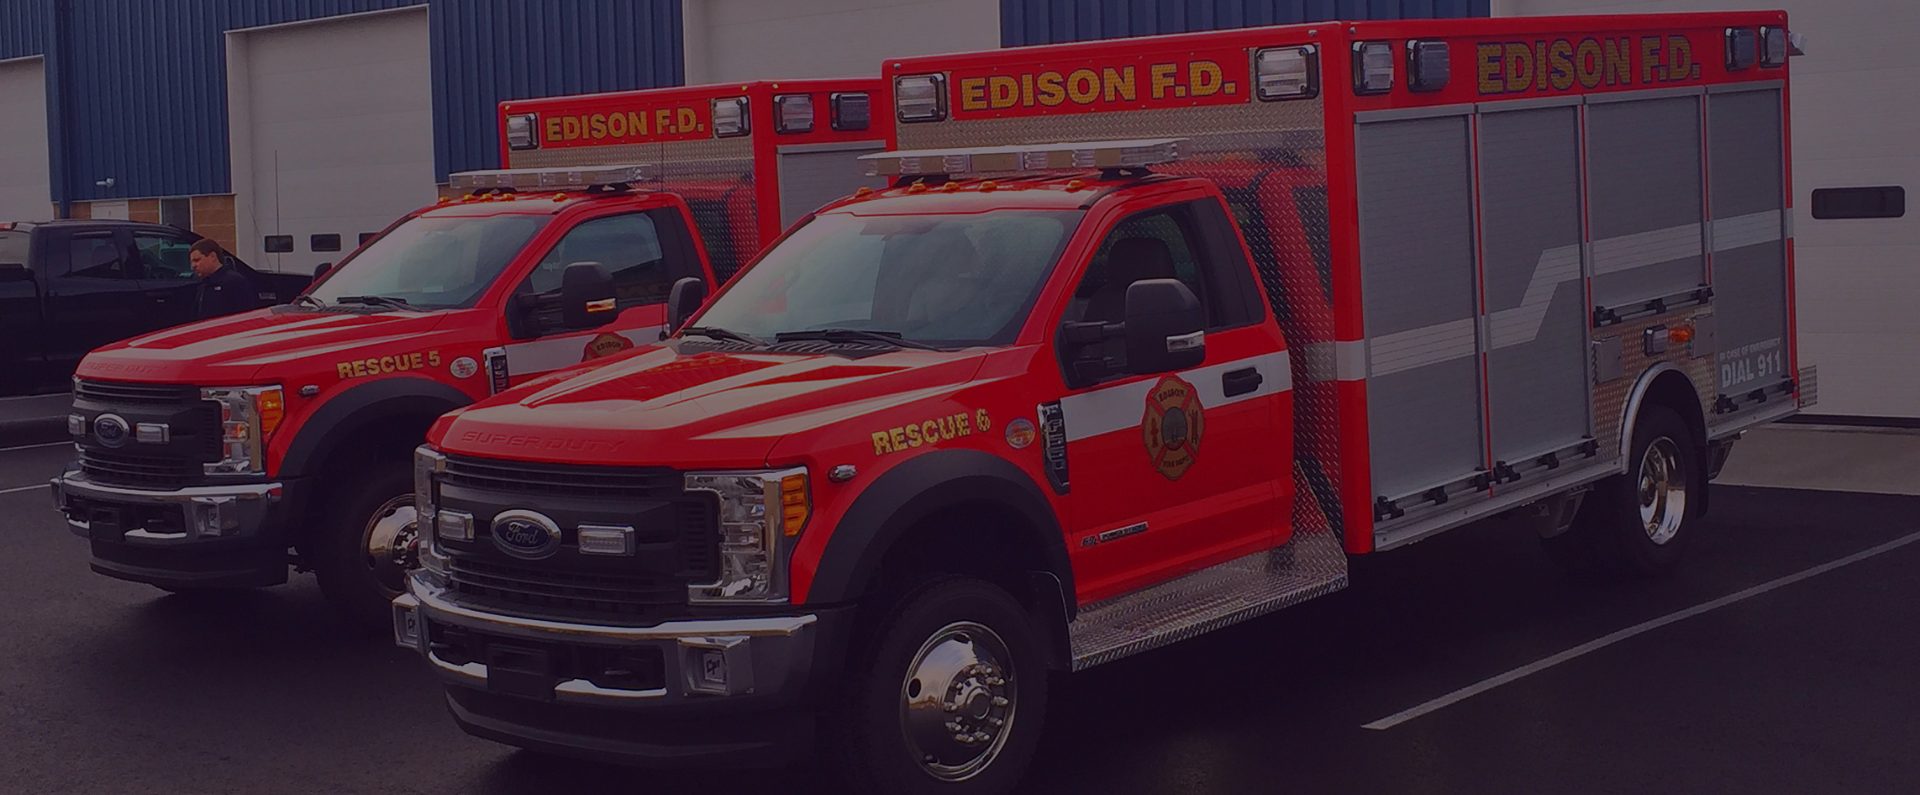 Copy of First Priority Emergency Vehicles Custom Fire Rescue and ESUs Specialty Vehicles